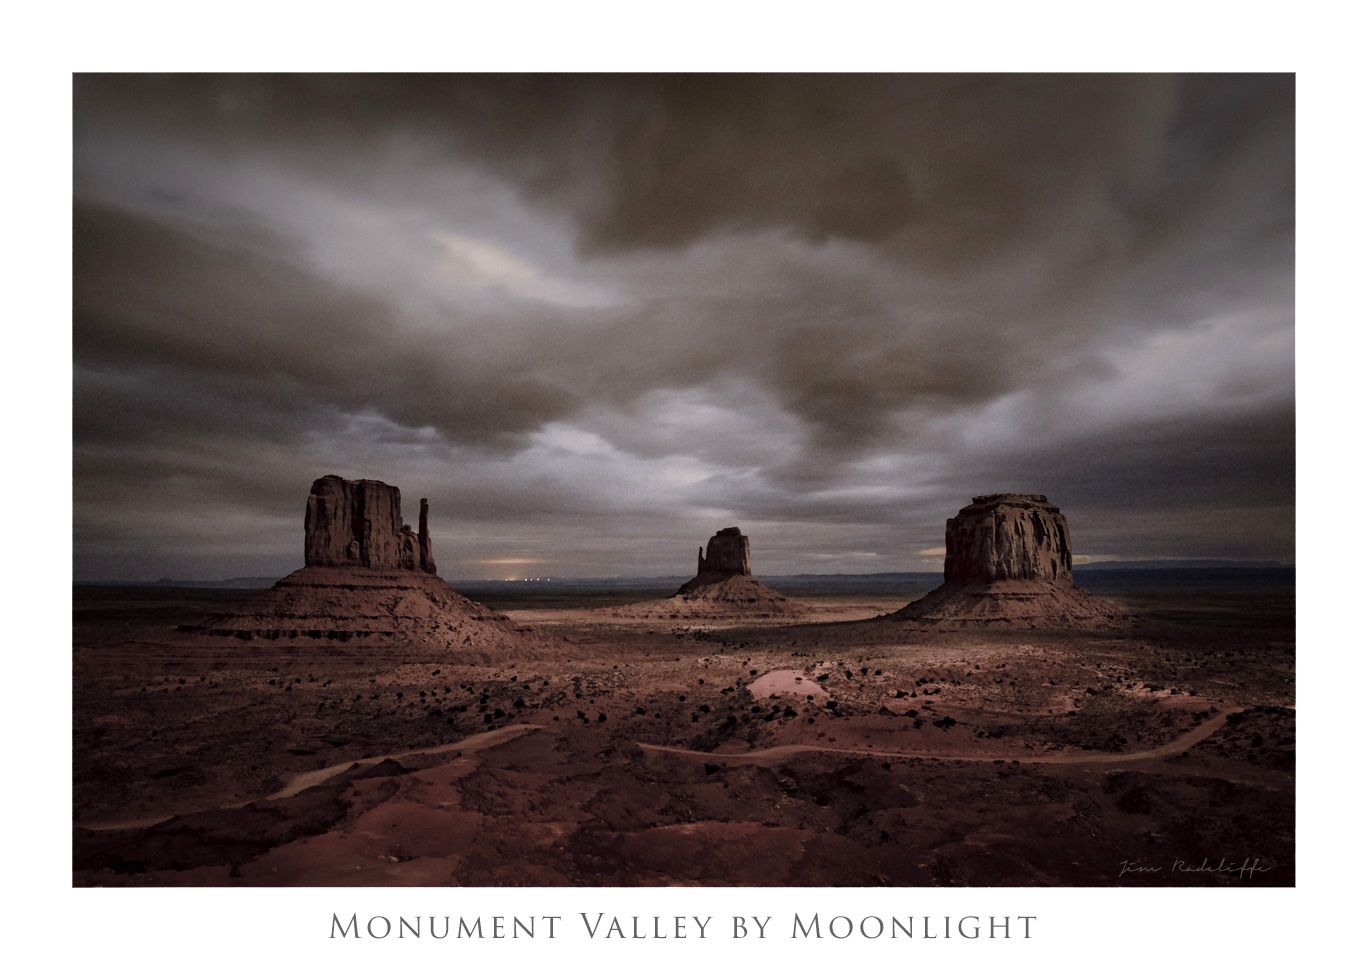 Monument Valley by Moonlight by Jim Radcliffe